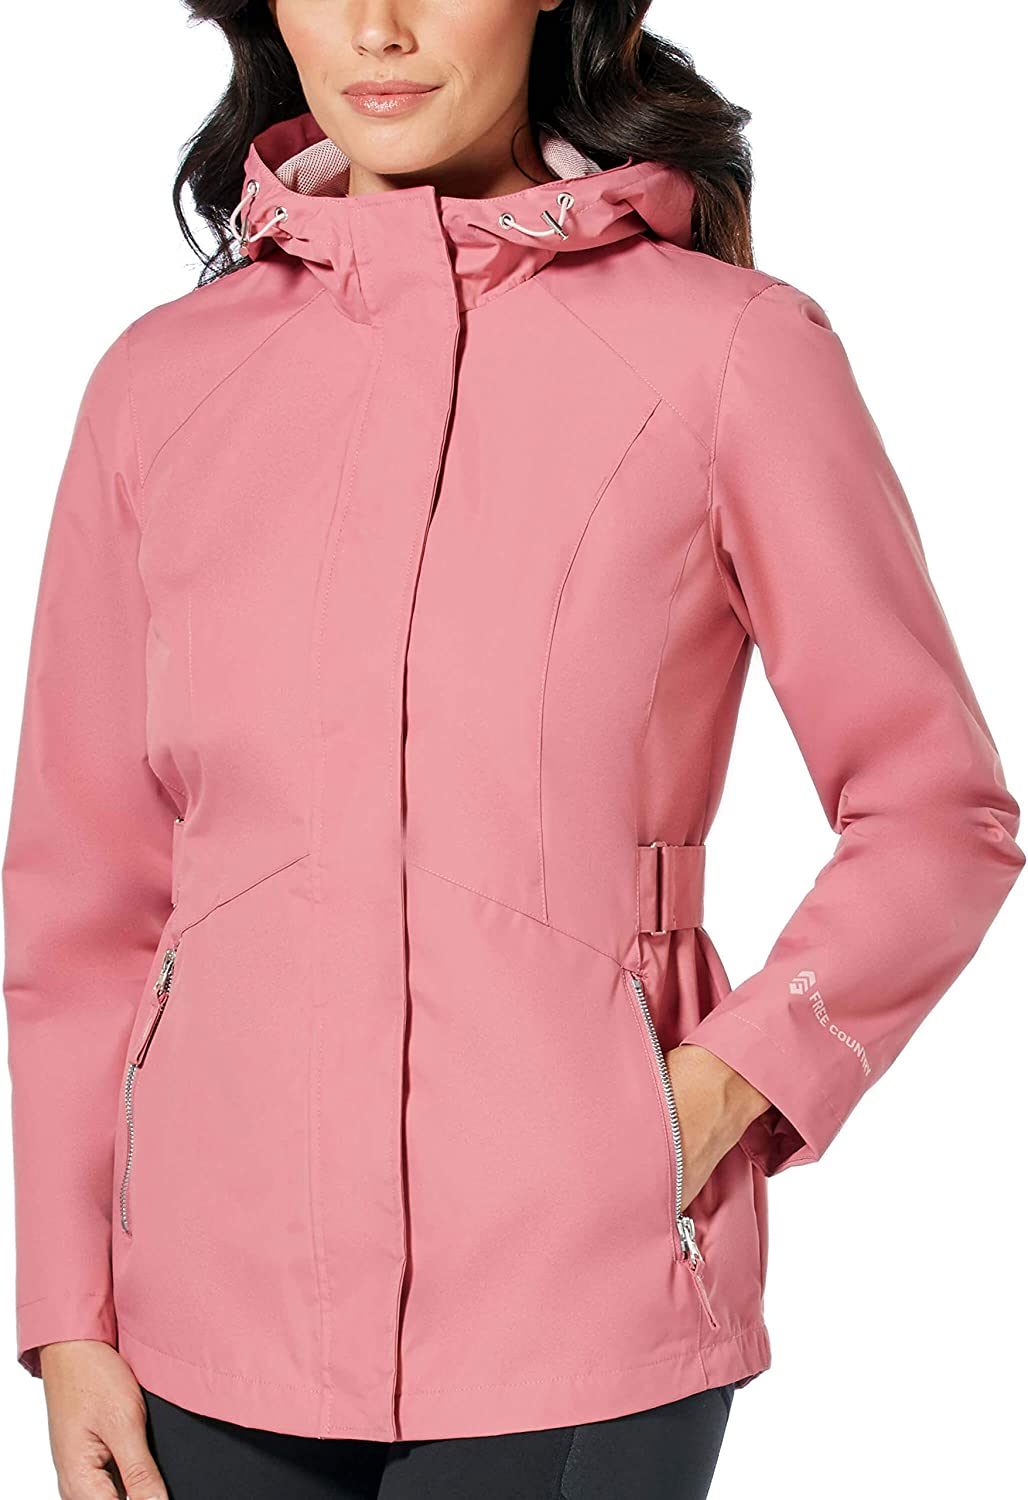 Free Country Womens Drizzle Radiance Anorak Jacket